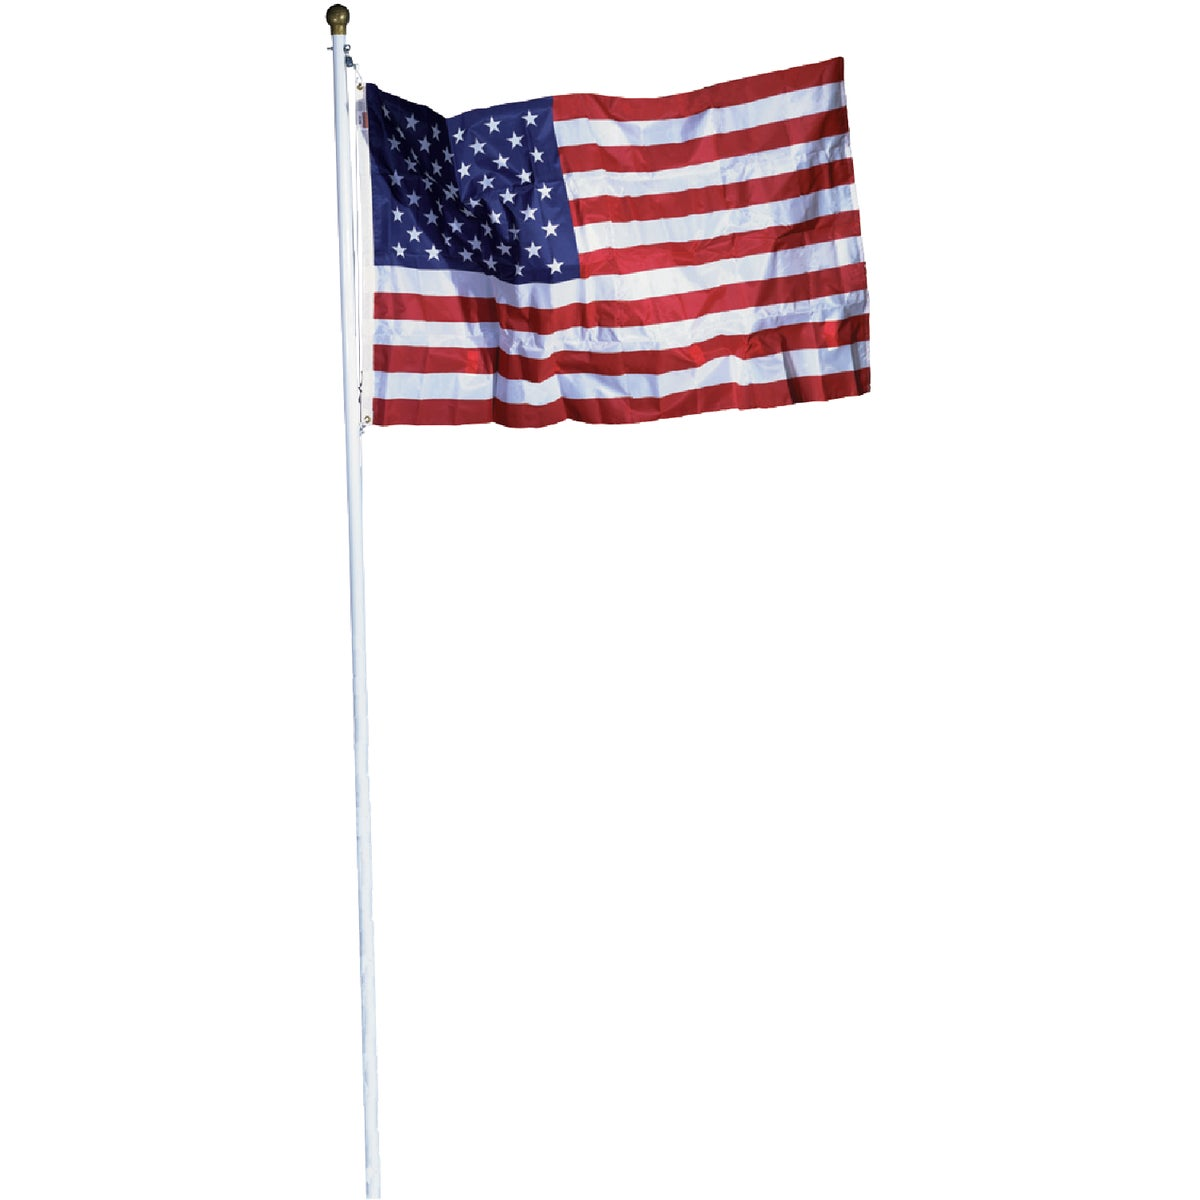 18' STEEL FLAG POLE KIT - SFP18F-S by Valley Forge Flag